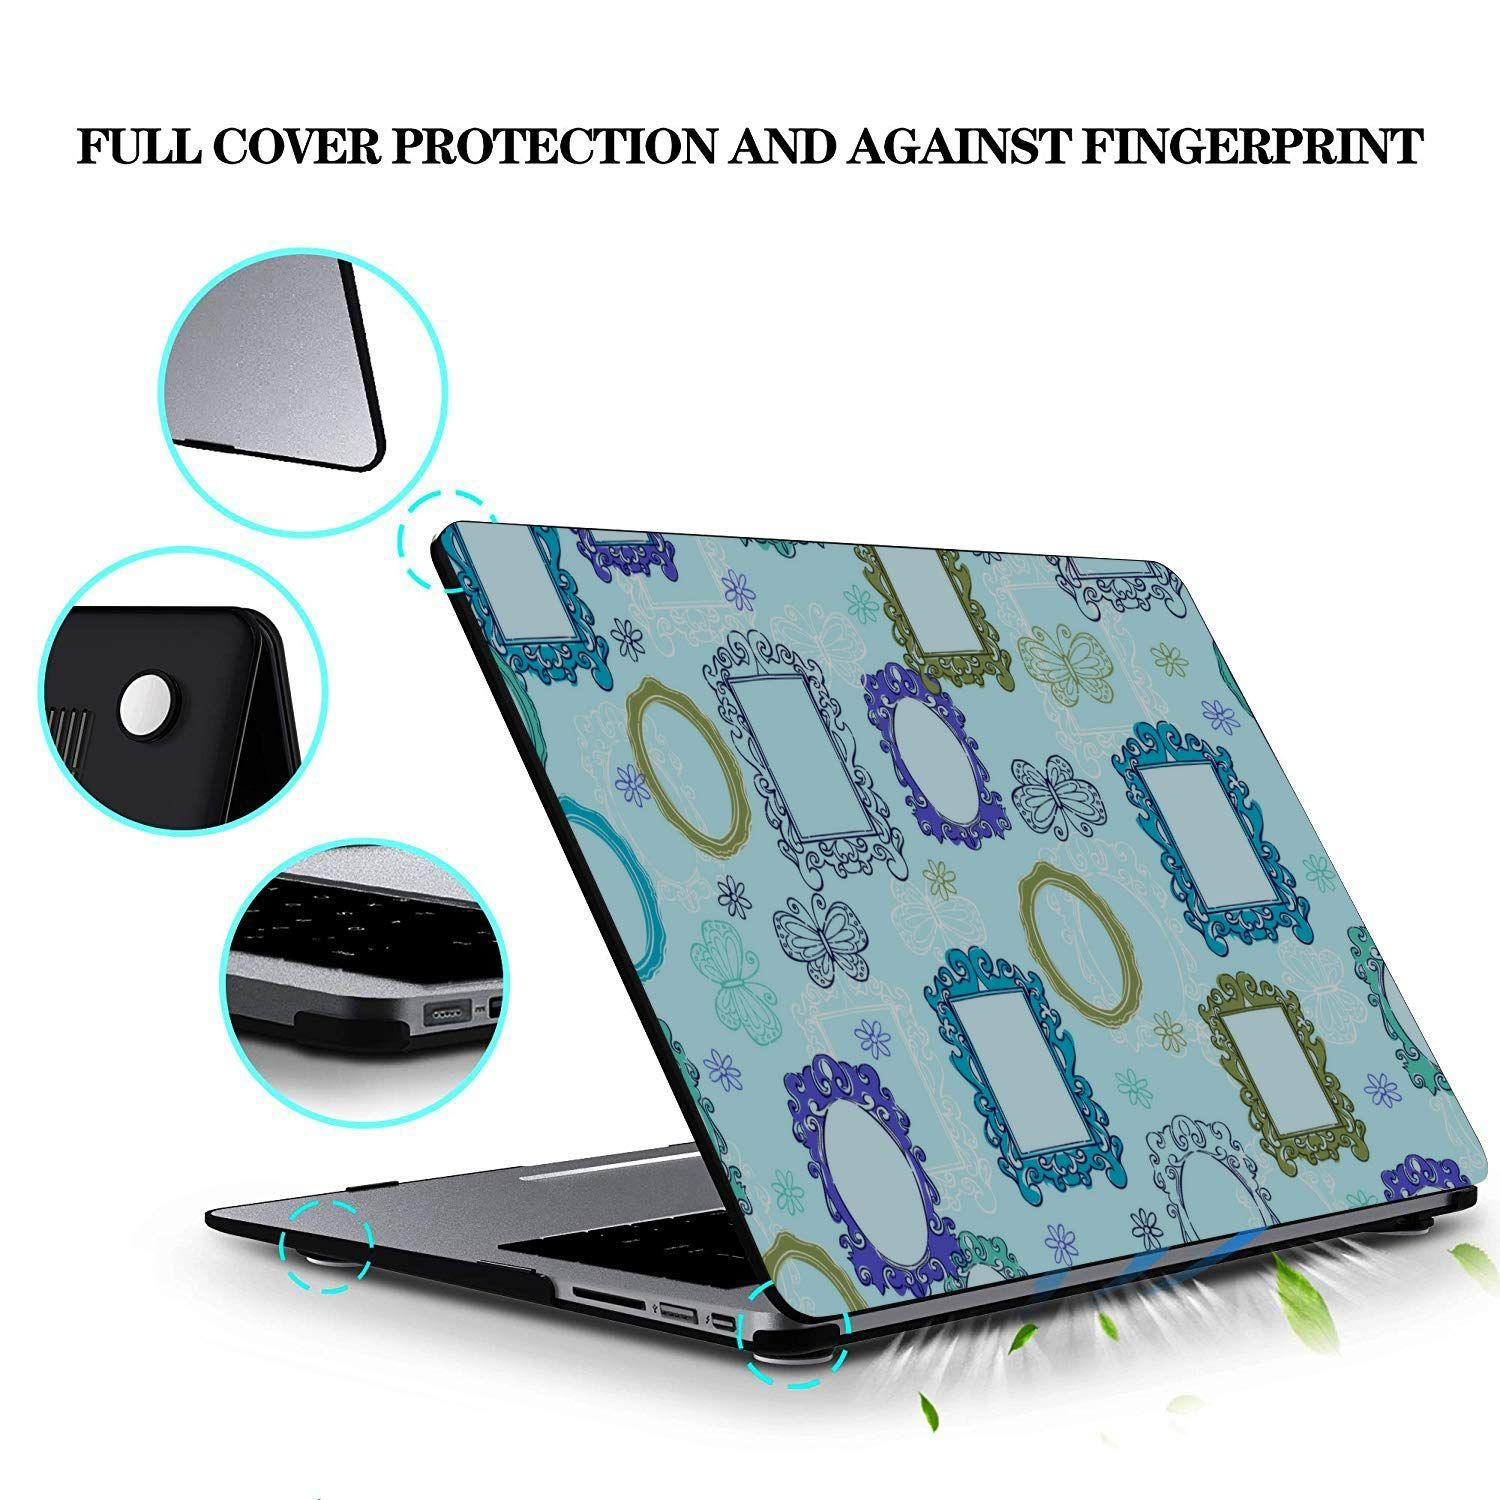 MacBook Air 11 Case Small Objects Beauty Dressing Mirror Plastic Hard Shell Compatible Mac Air 11 Pro 13 15 Laptop Hard Case Protection for MacBook 2016-2019 Version